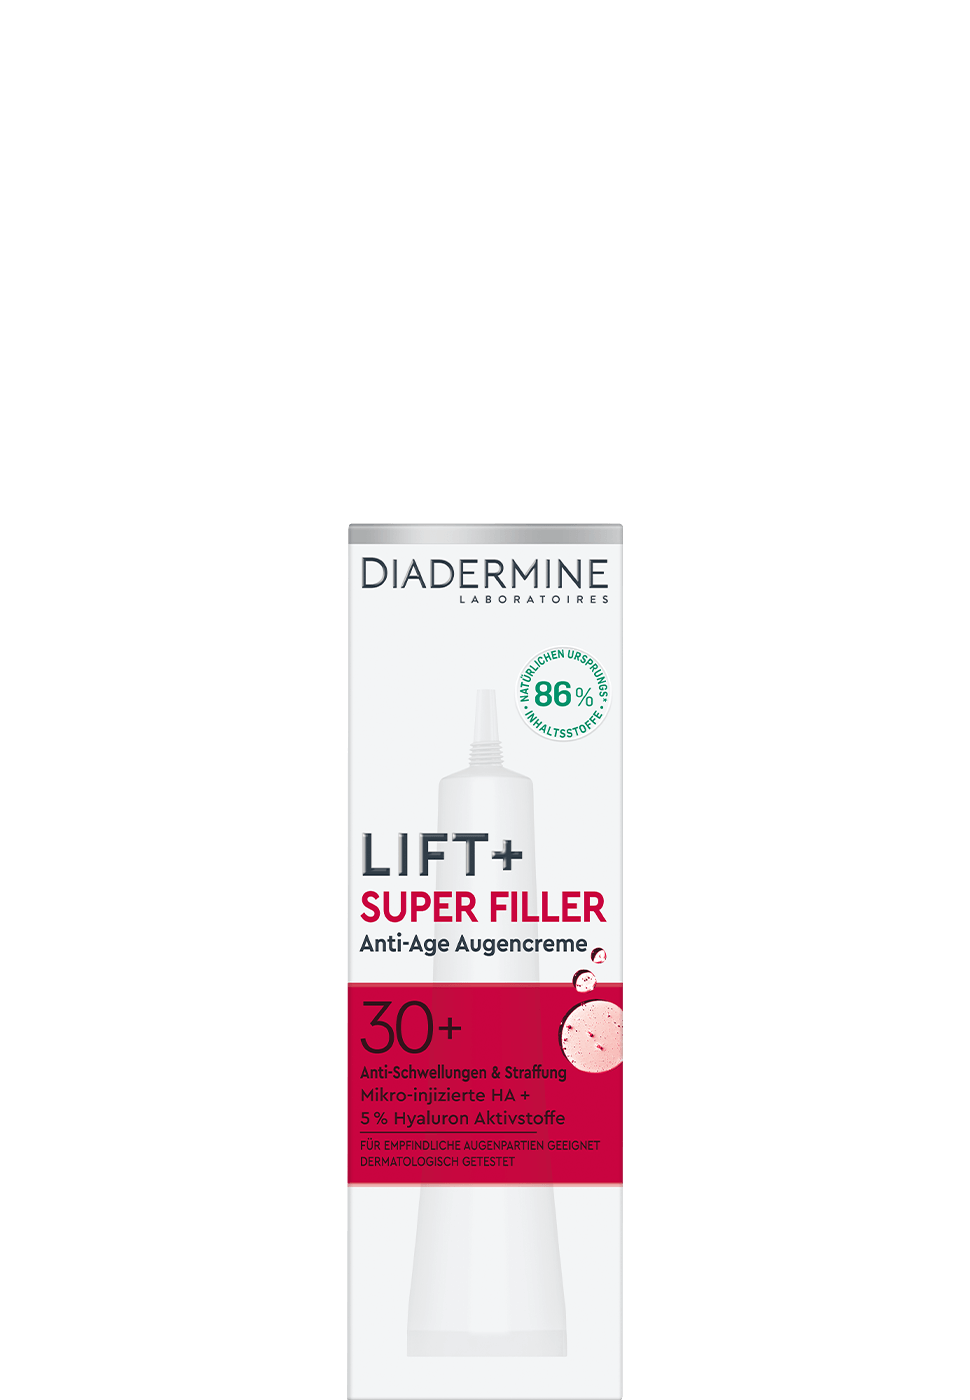 diadermine_de_lift_plus_super_filler_augencreme_970x1400